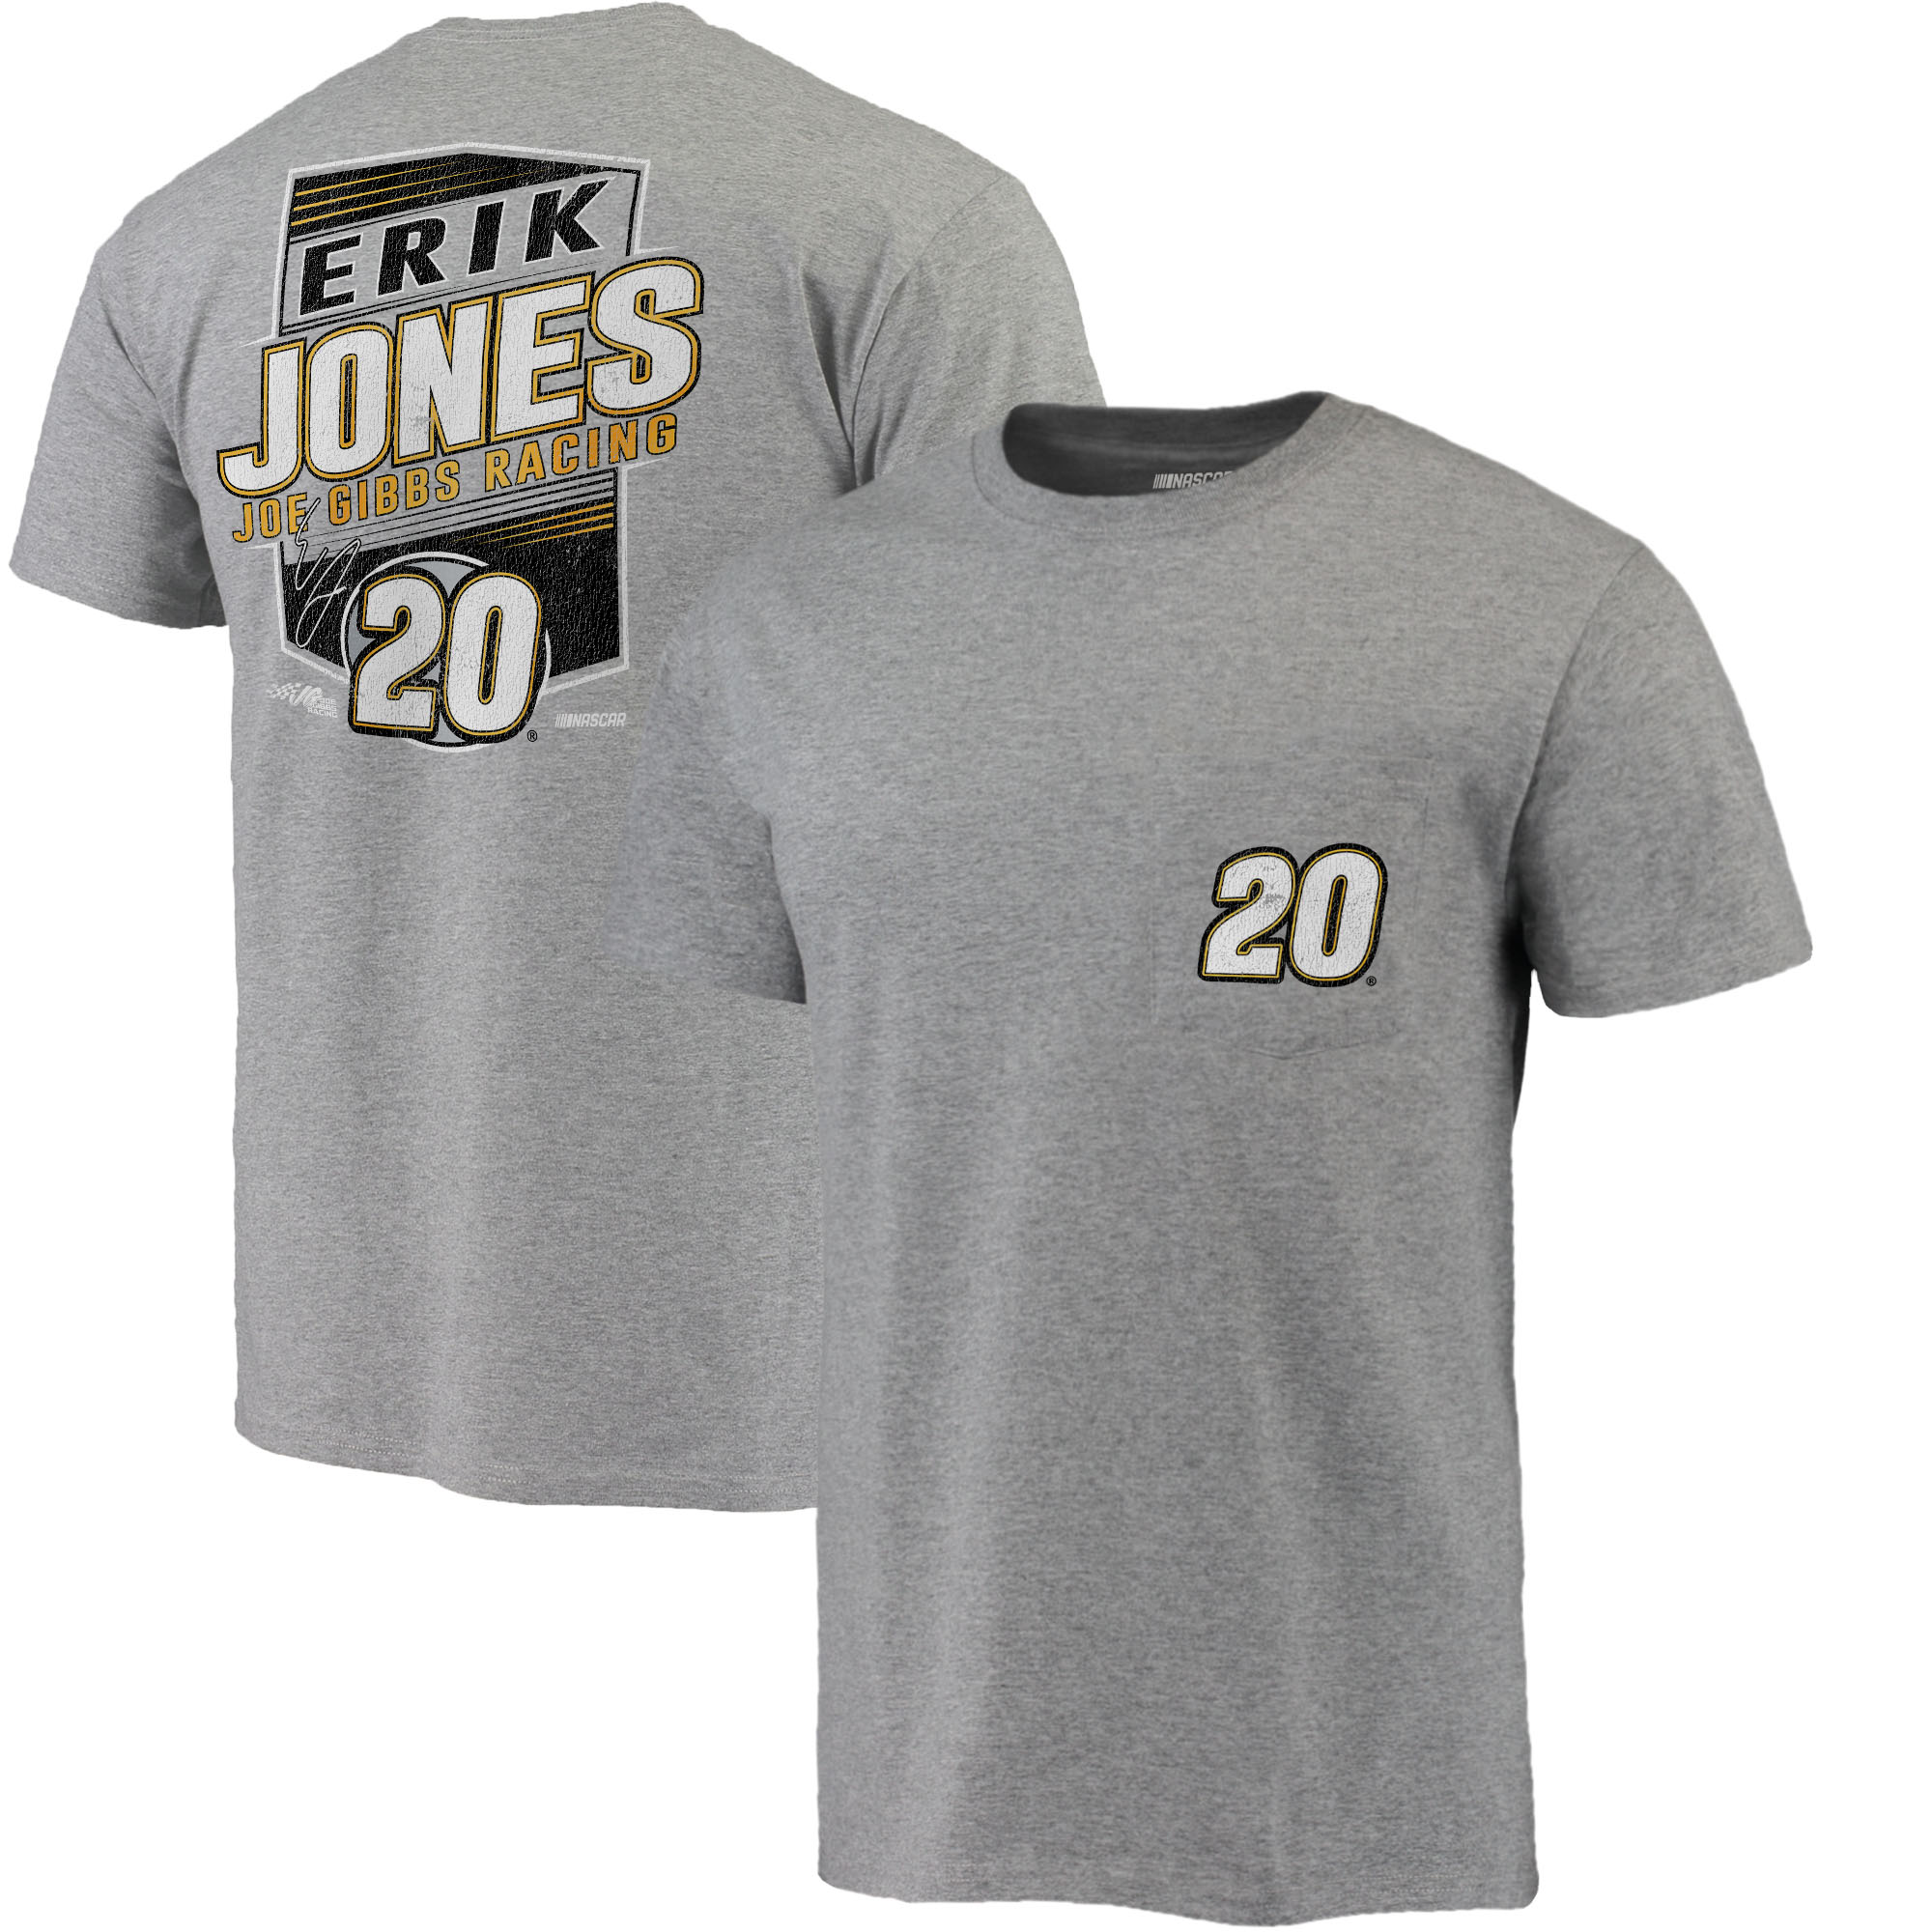 Erik Jones Fanatics Branded Pocket T-Shirt - Heather Gray